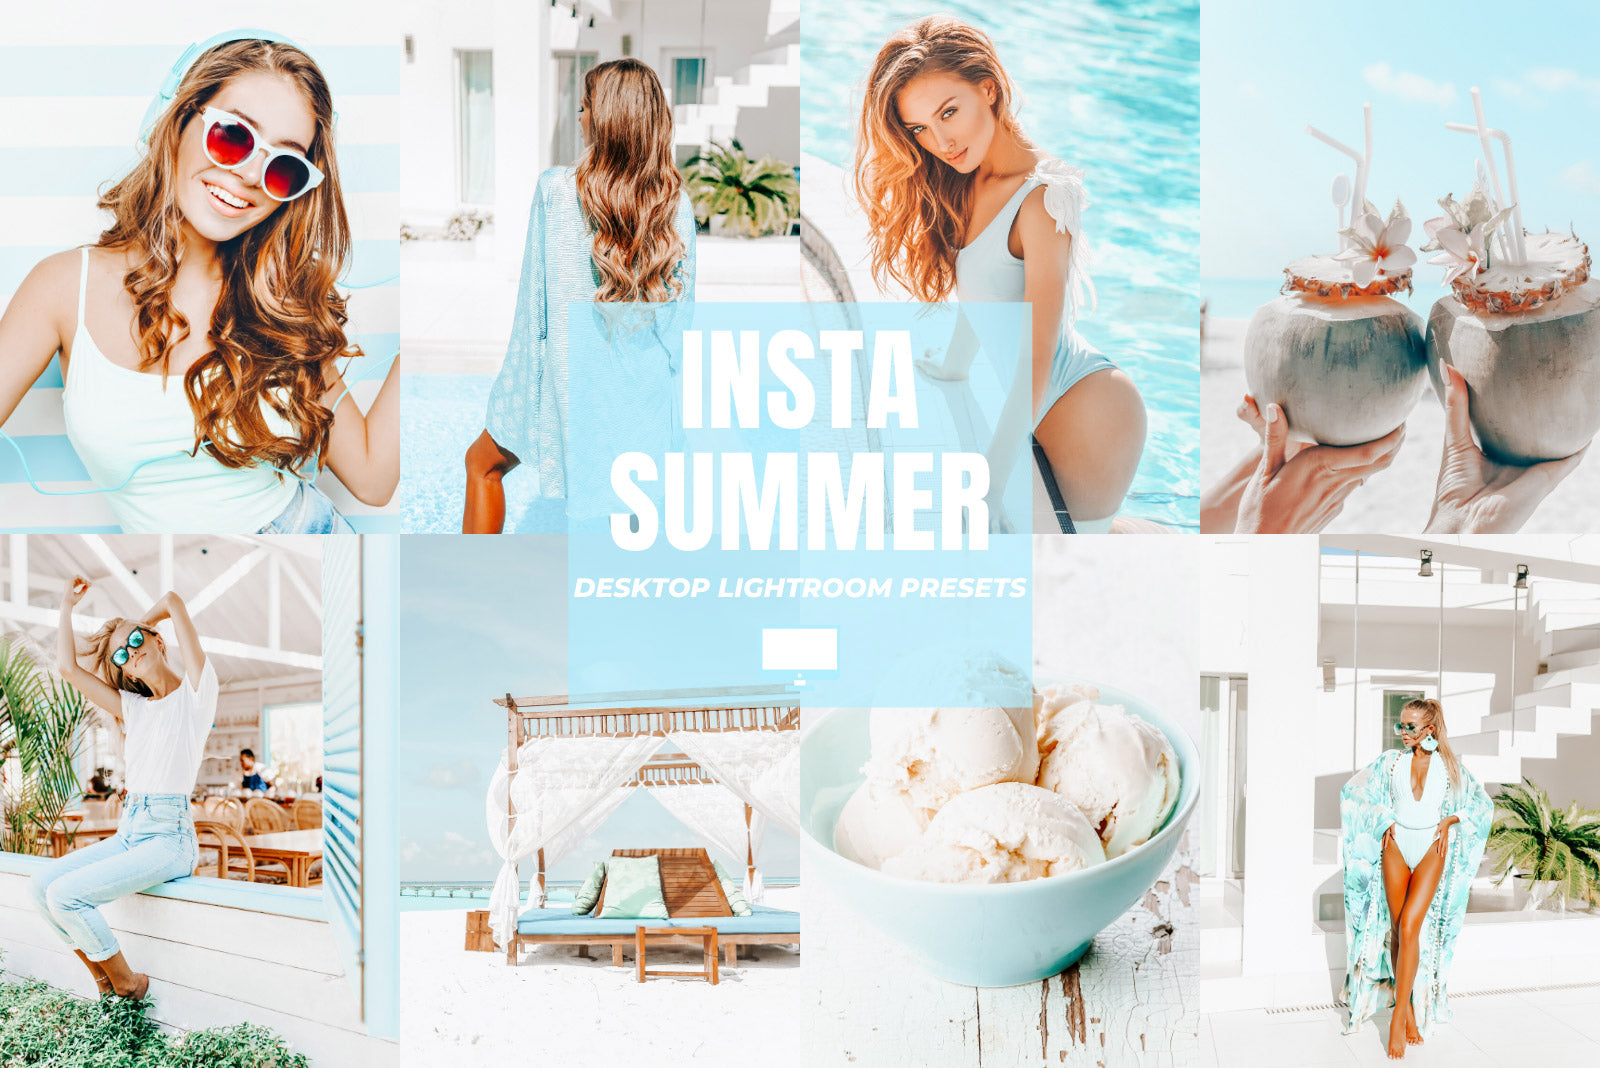 INSTA SUMMER DESKTOP LIGHTROOM PRESETS by The Viral Presets